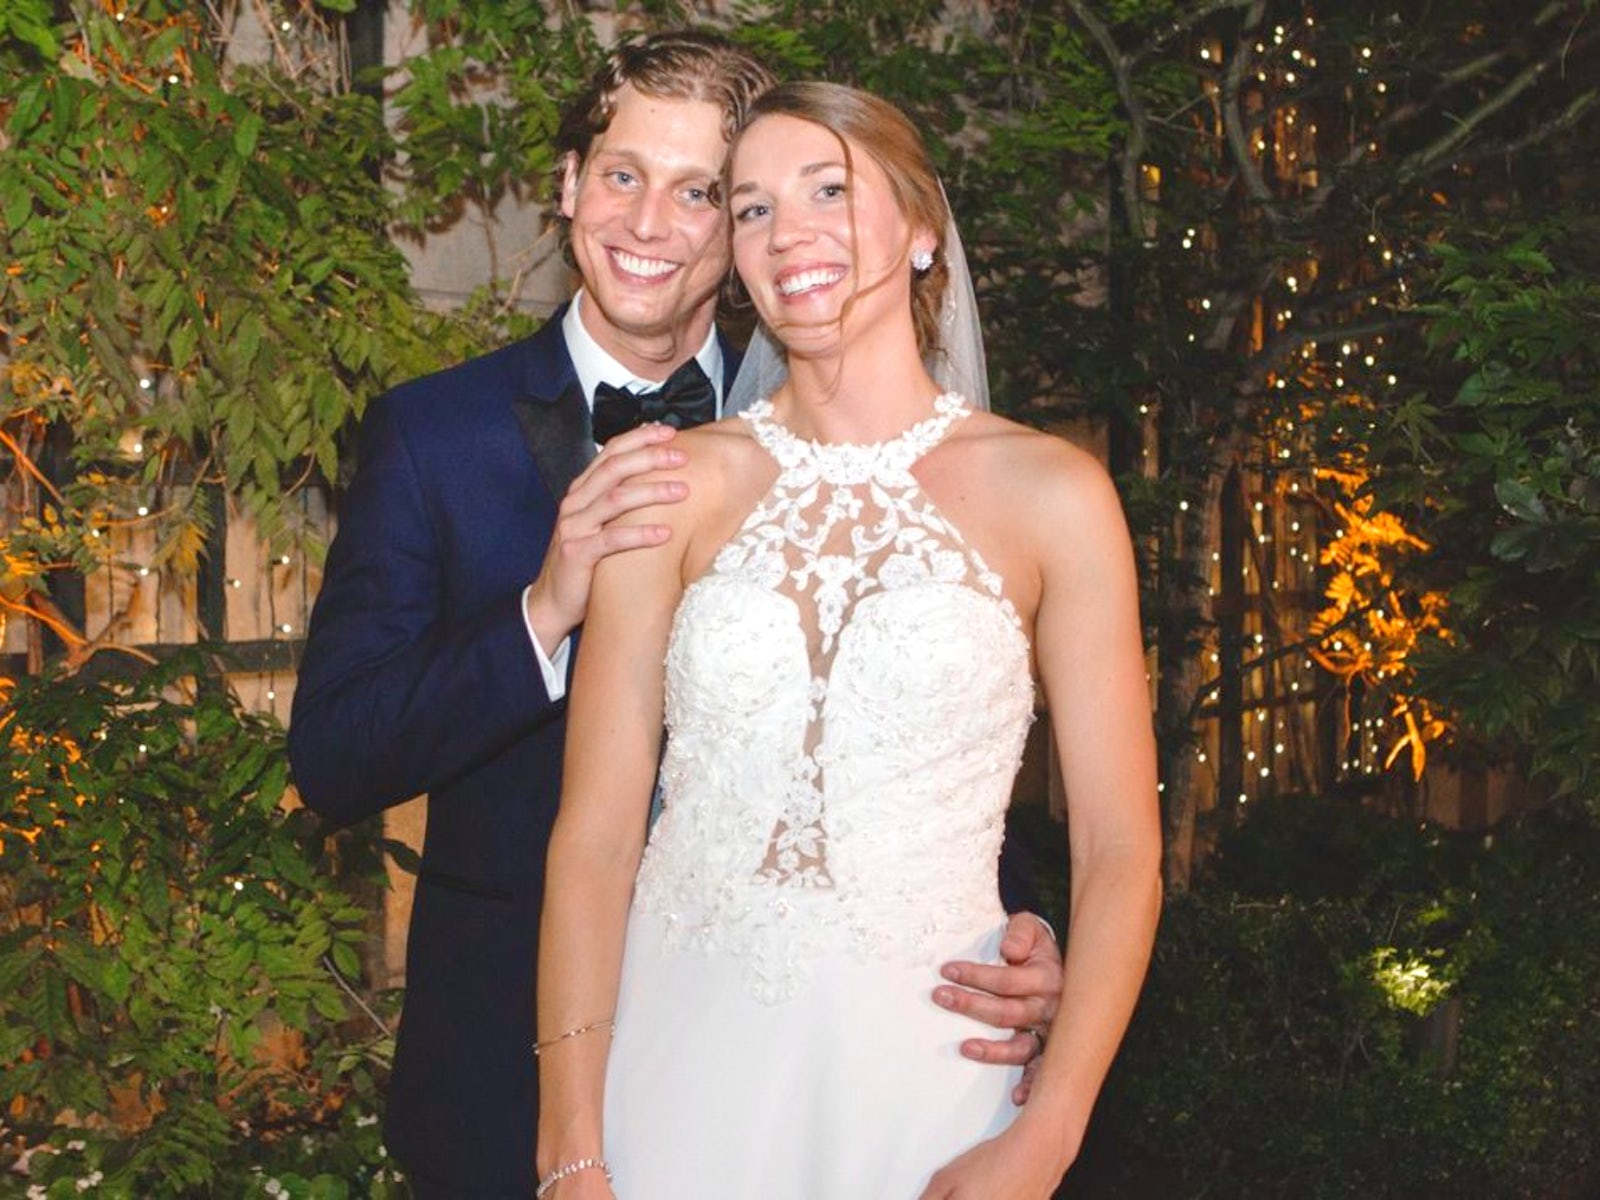 Married At First Sight Season 10 Couples Revealed By Lifetime Meet The New Cast Photos